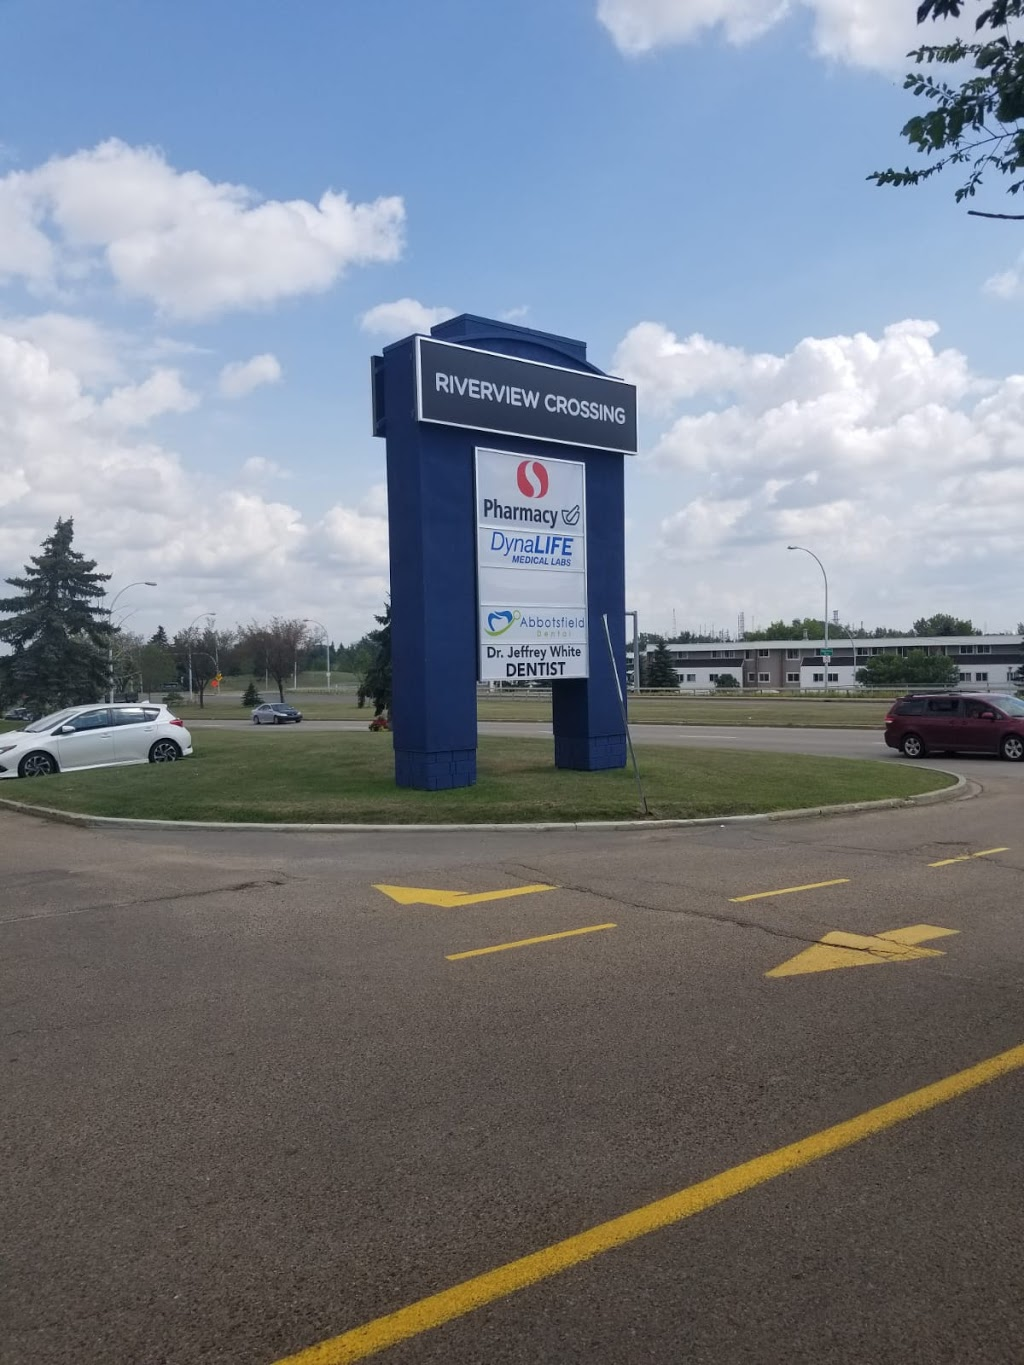 Riverview Medical Centre   health   135, 3210 118 Ave NW, Edmonton, AB T5W 4W1, Canada   7802498911 OR +1 780-249-8911